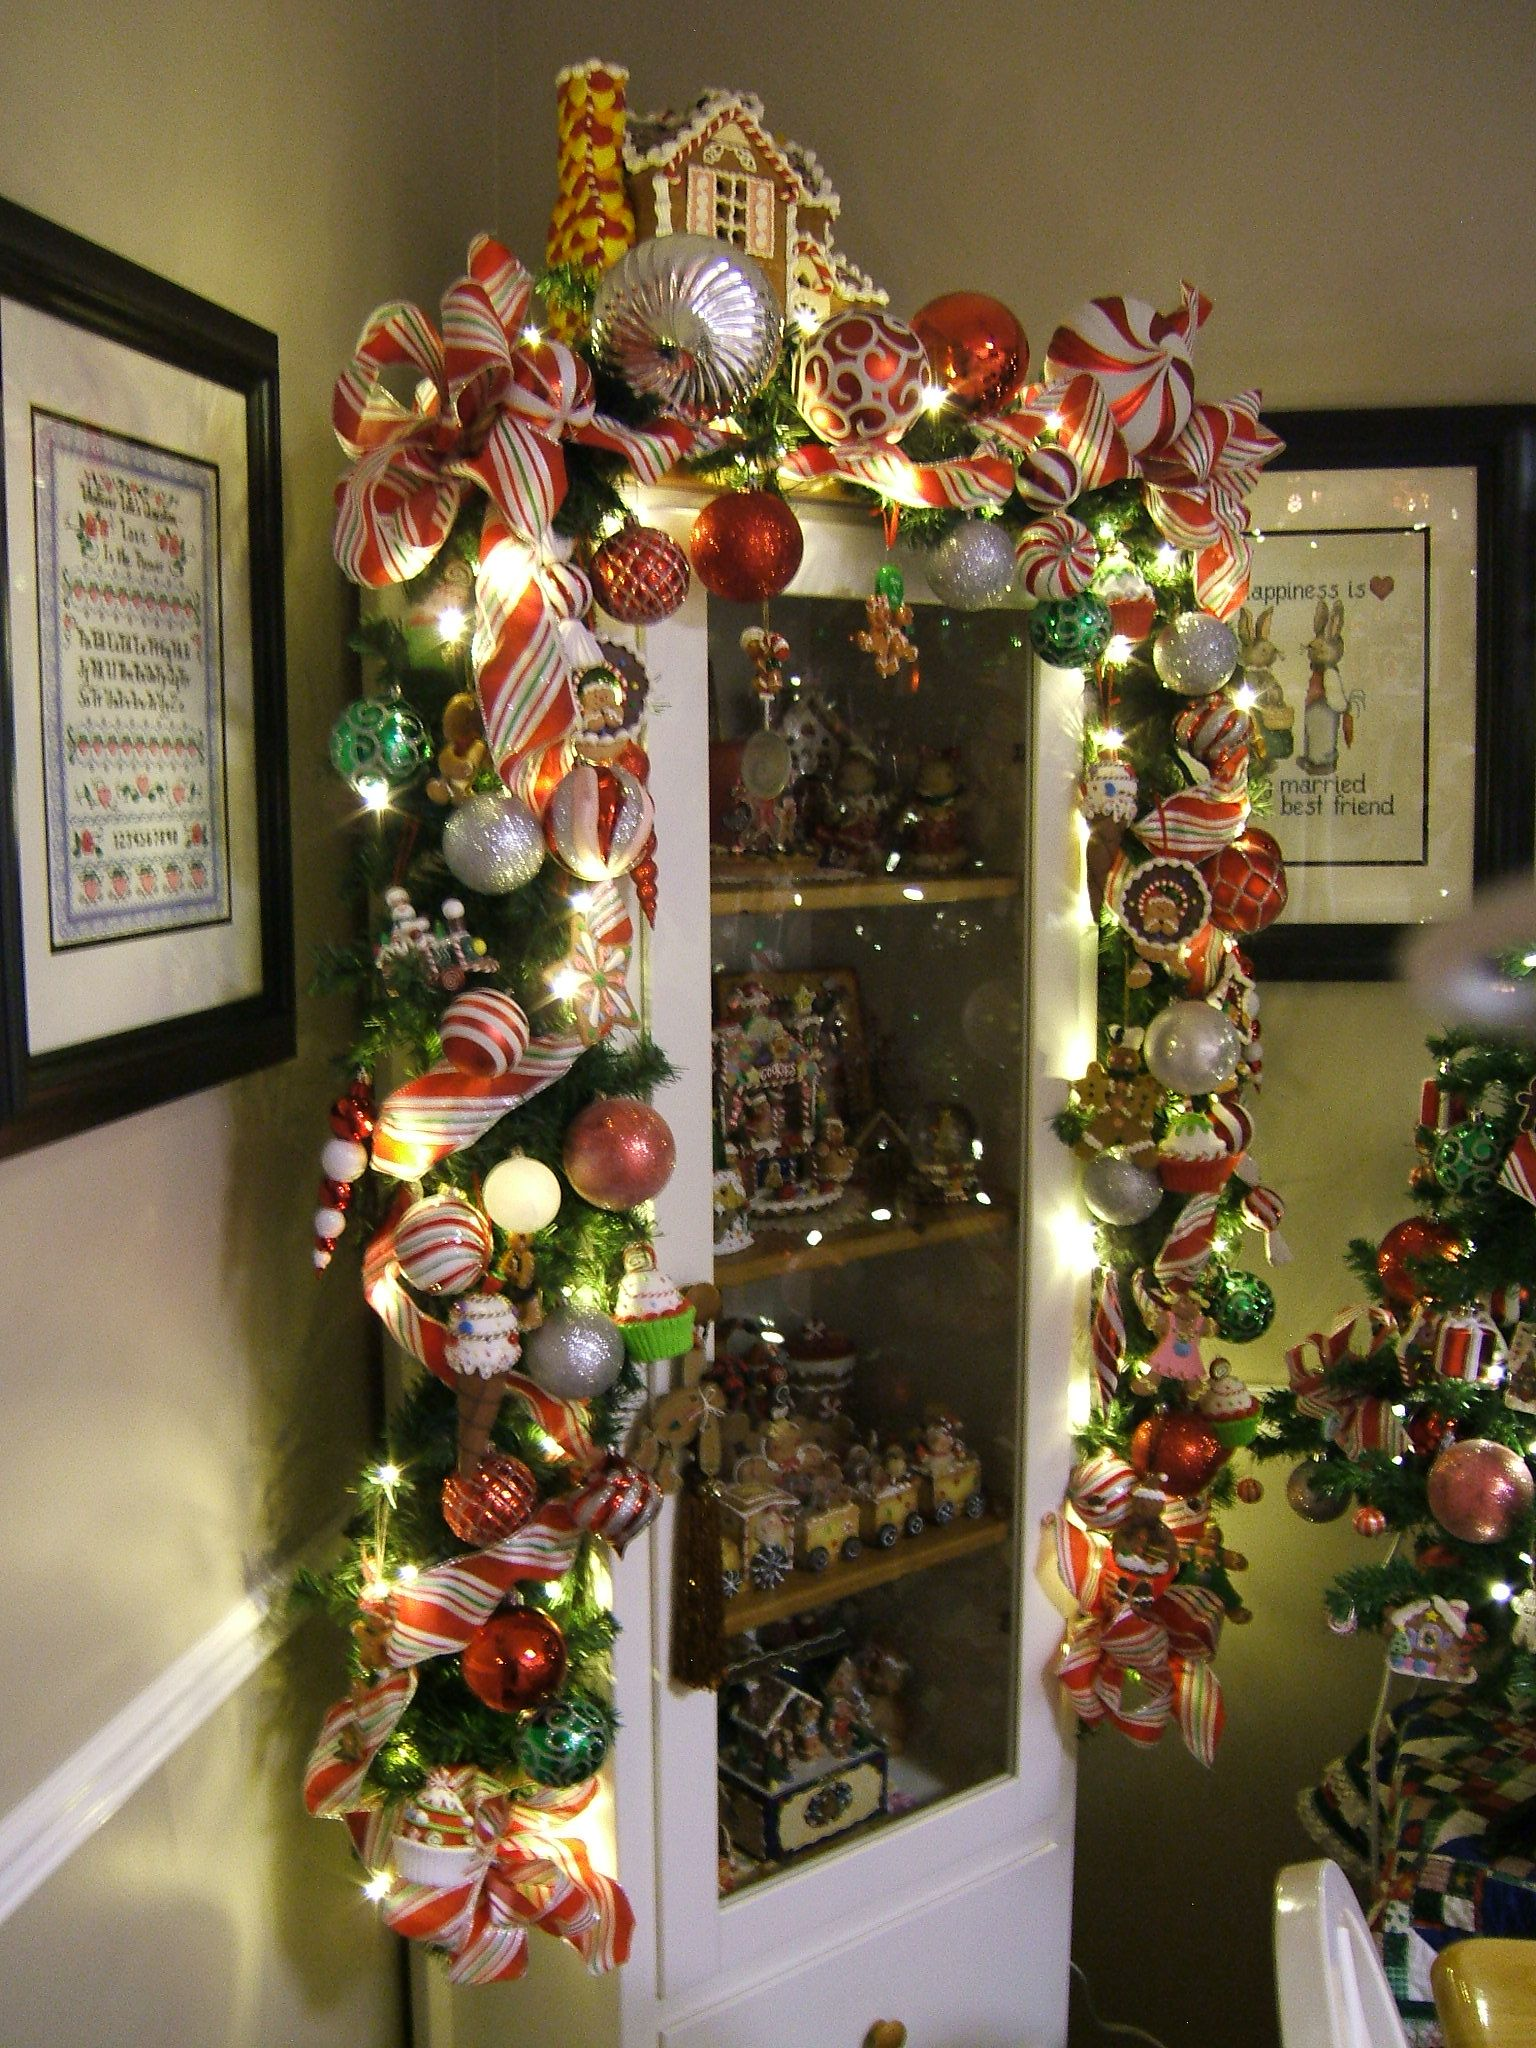 oh my, over the top garland. Love the house on top